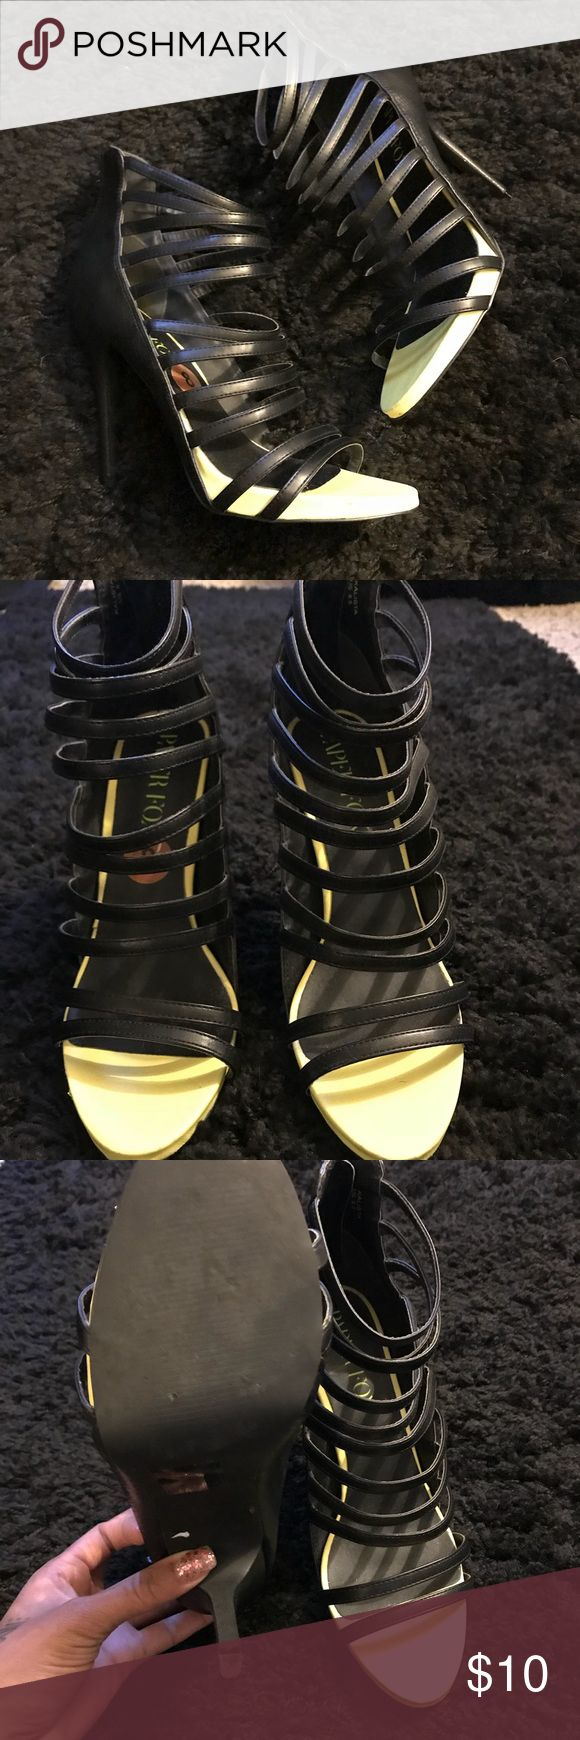 Black Paper Fox Strappy Heels Size 8.5 Black Paper Fox strappy heels size 8.5. These have a little bit of lime green by the toes. Worn a few times, but great condition! No rips or tears on the heel. Paper Fox Shoes Heels